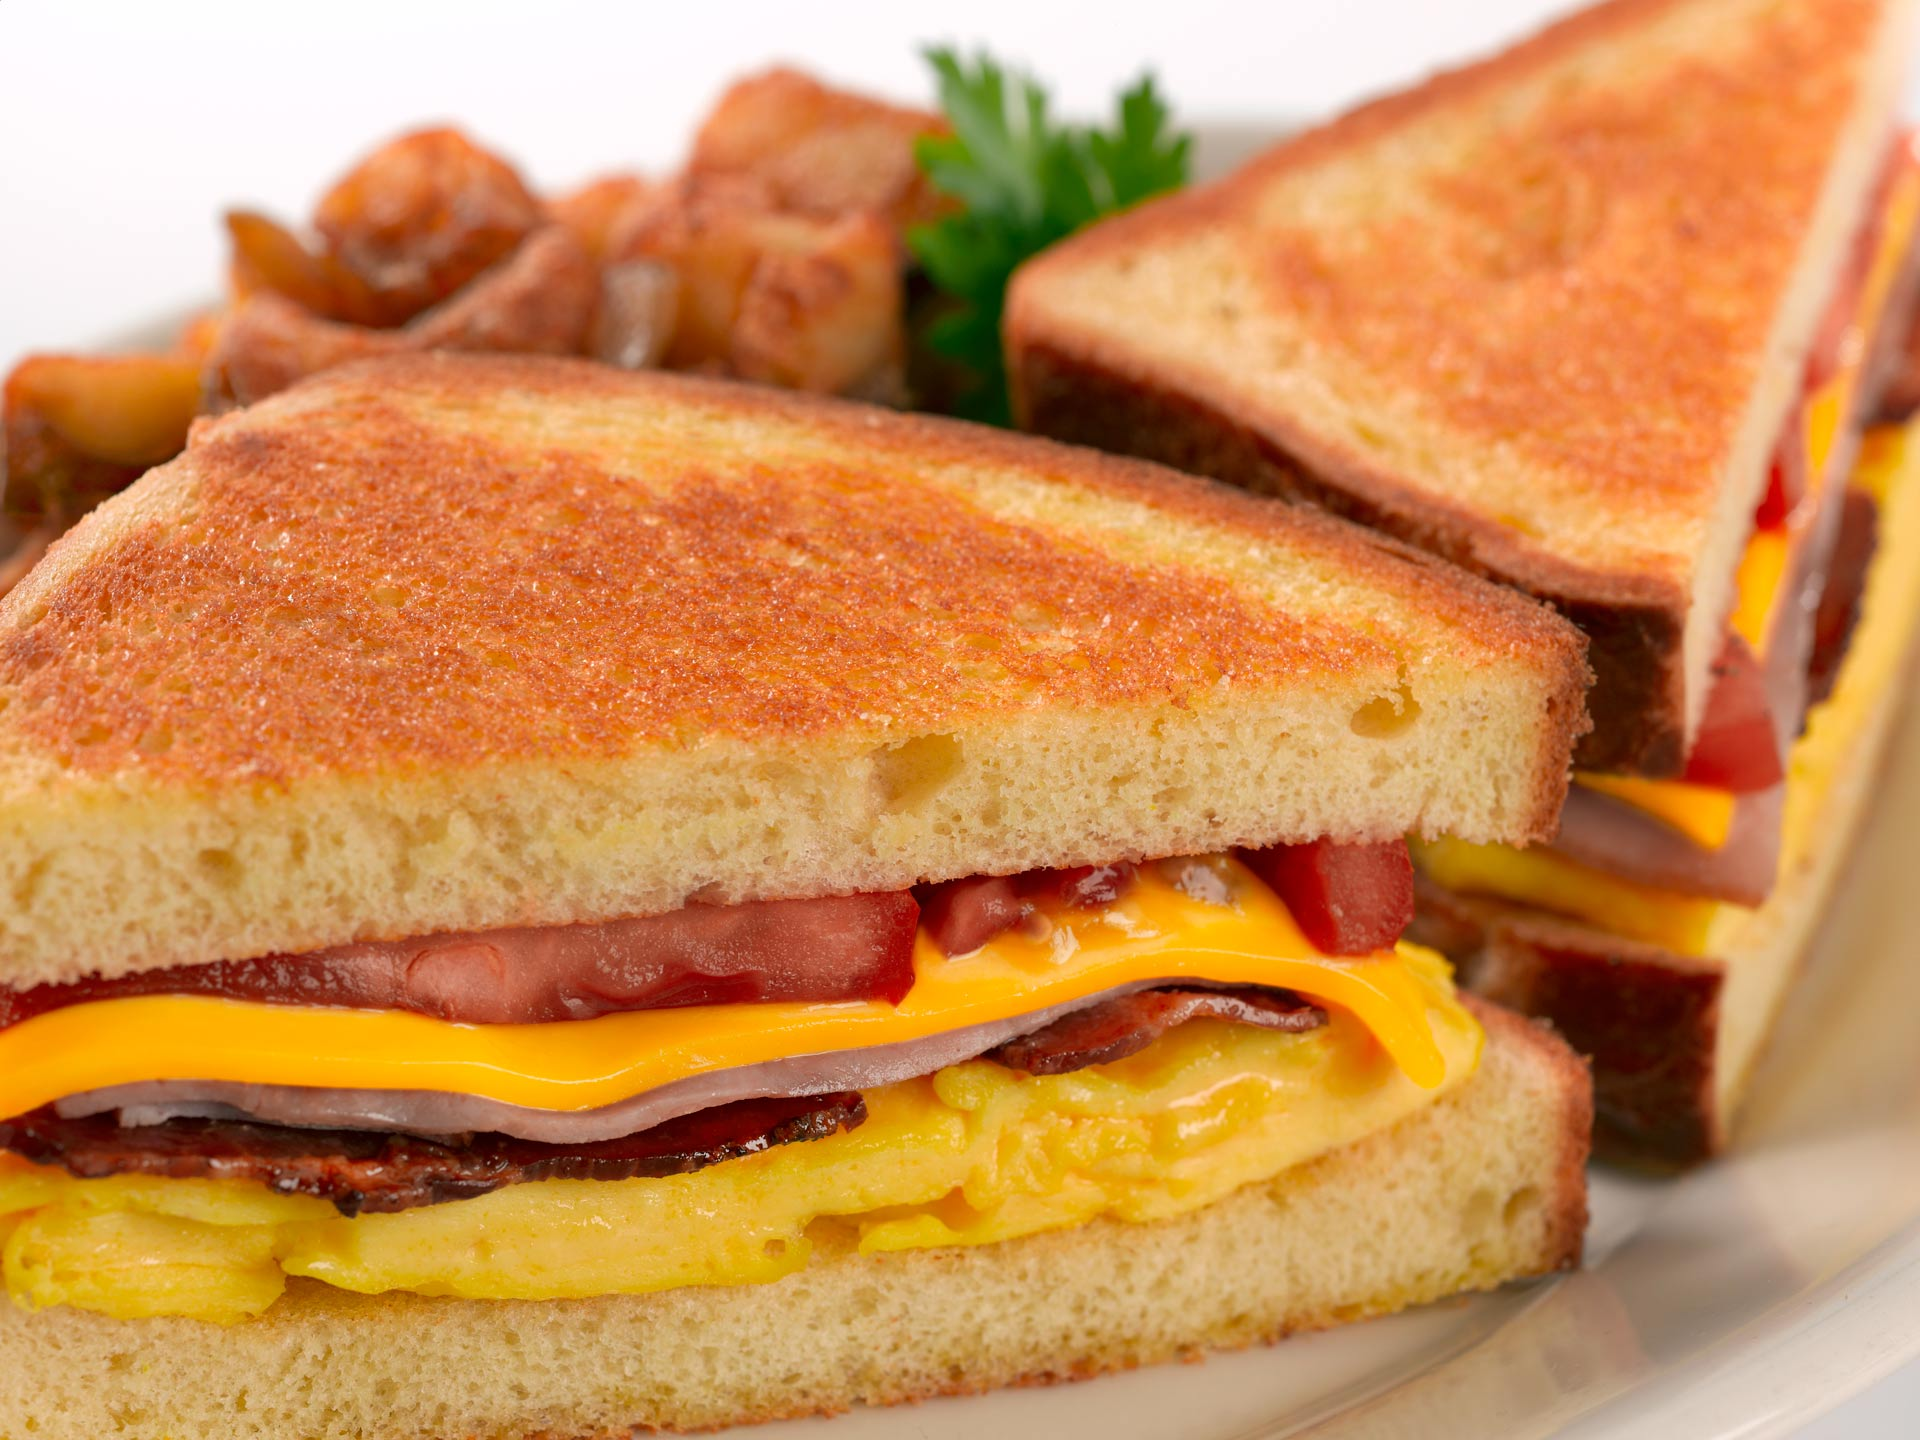 Top 10 Most Delicious Sandwiches Mankind Has Ever Tasted